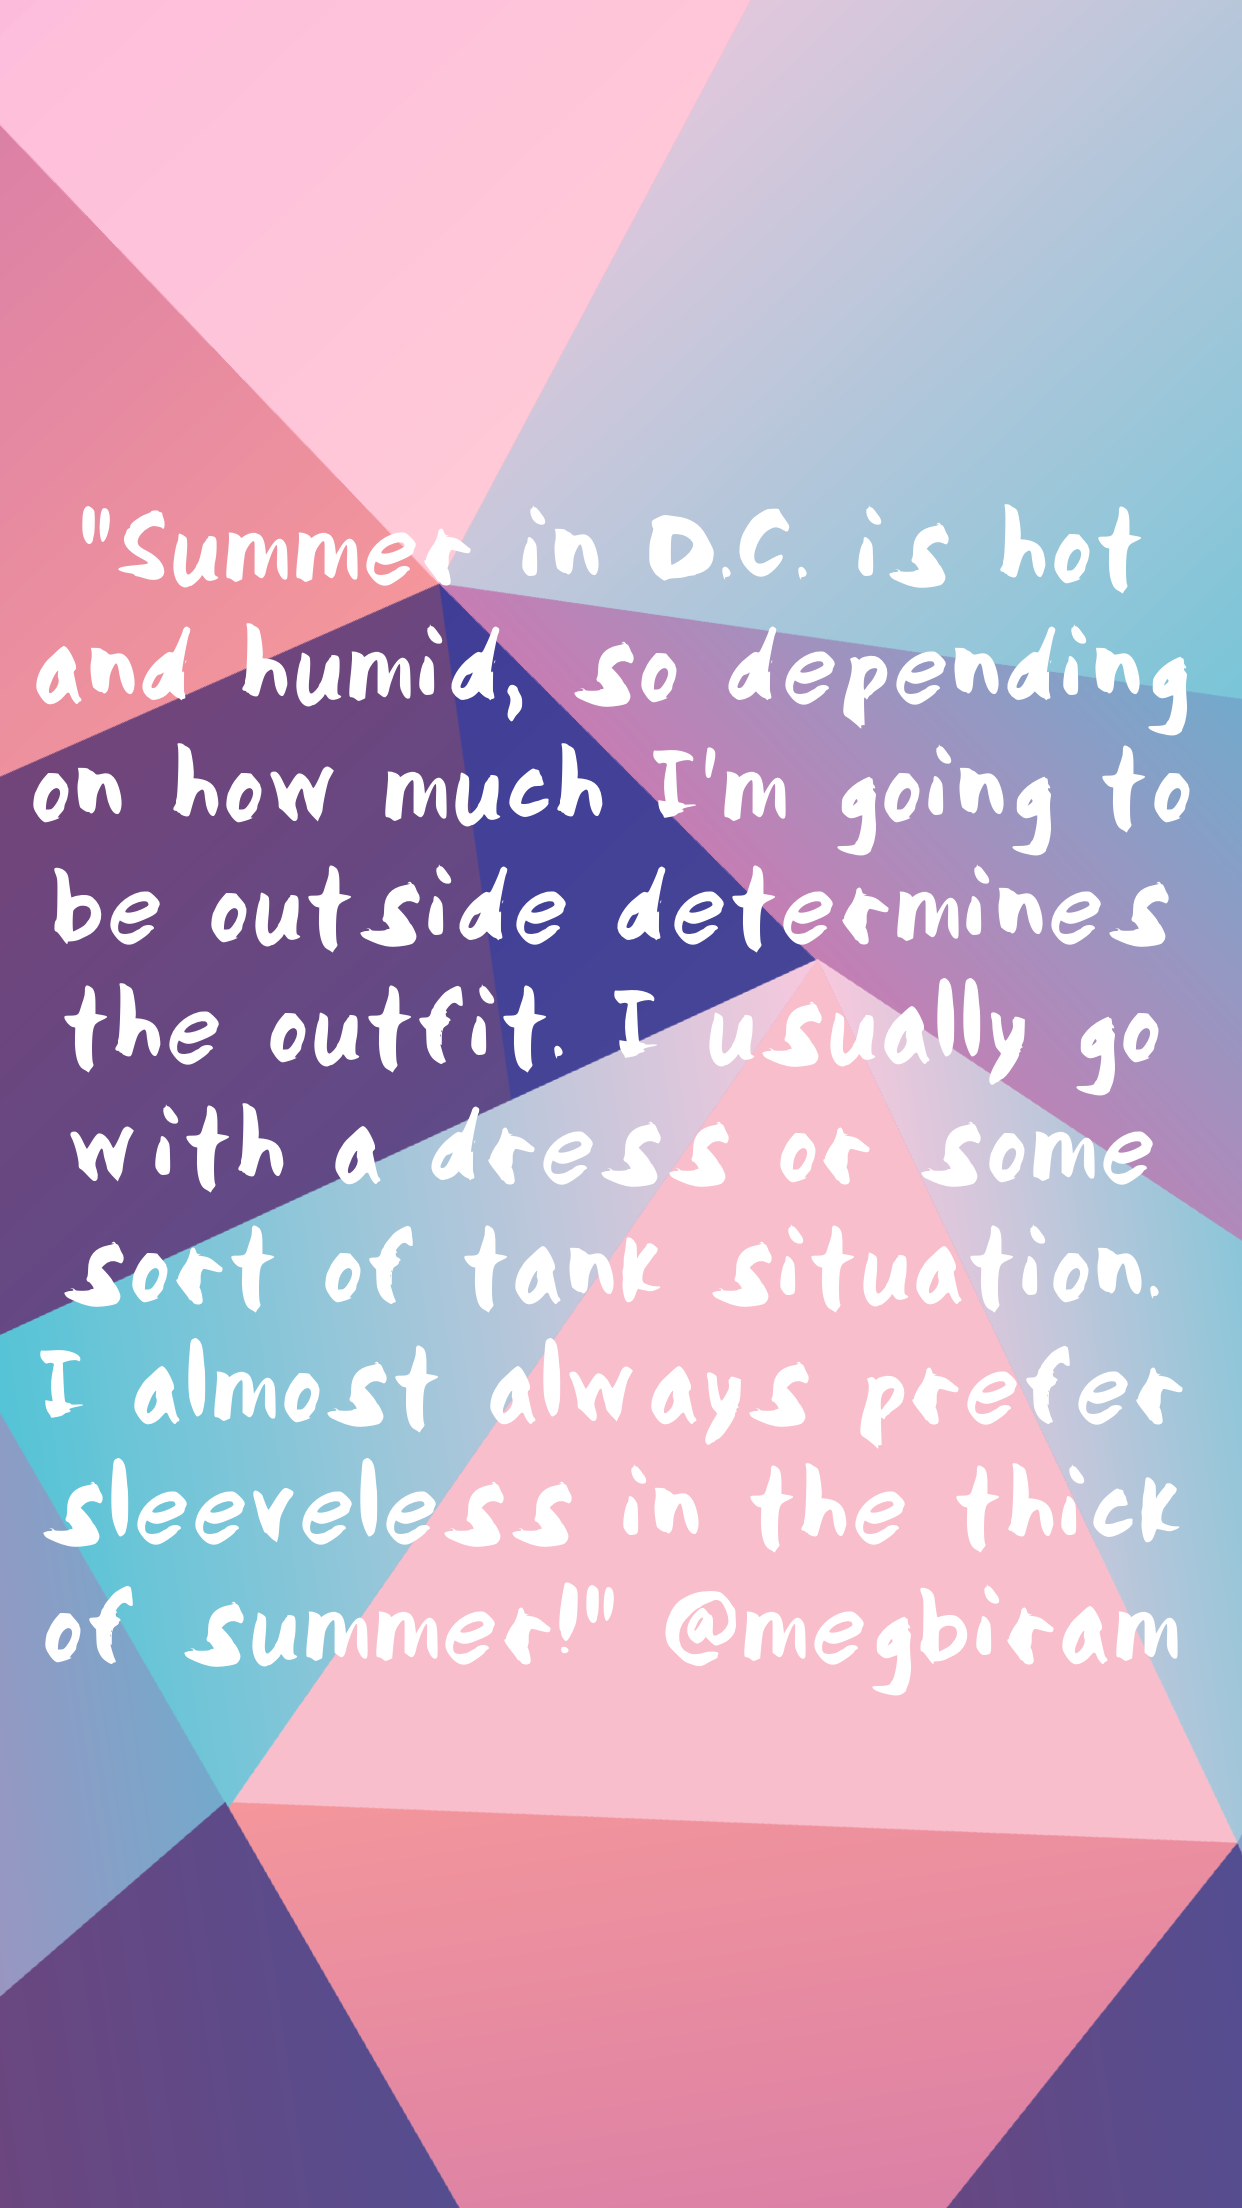 """Summer in D.C. is hot and humid, so depending on how much I'm going to be outside determines the outfit. I usually go with a dress or some sort of tank situation. I almost always prefer sleeveless in the thick of summer!"""